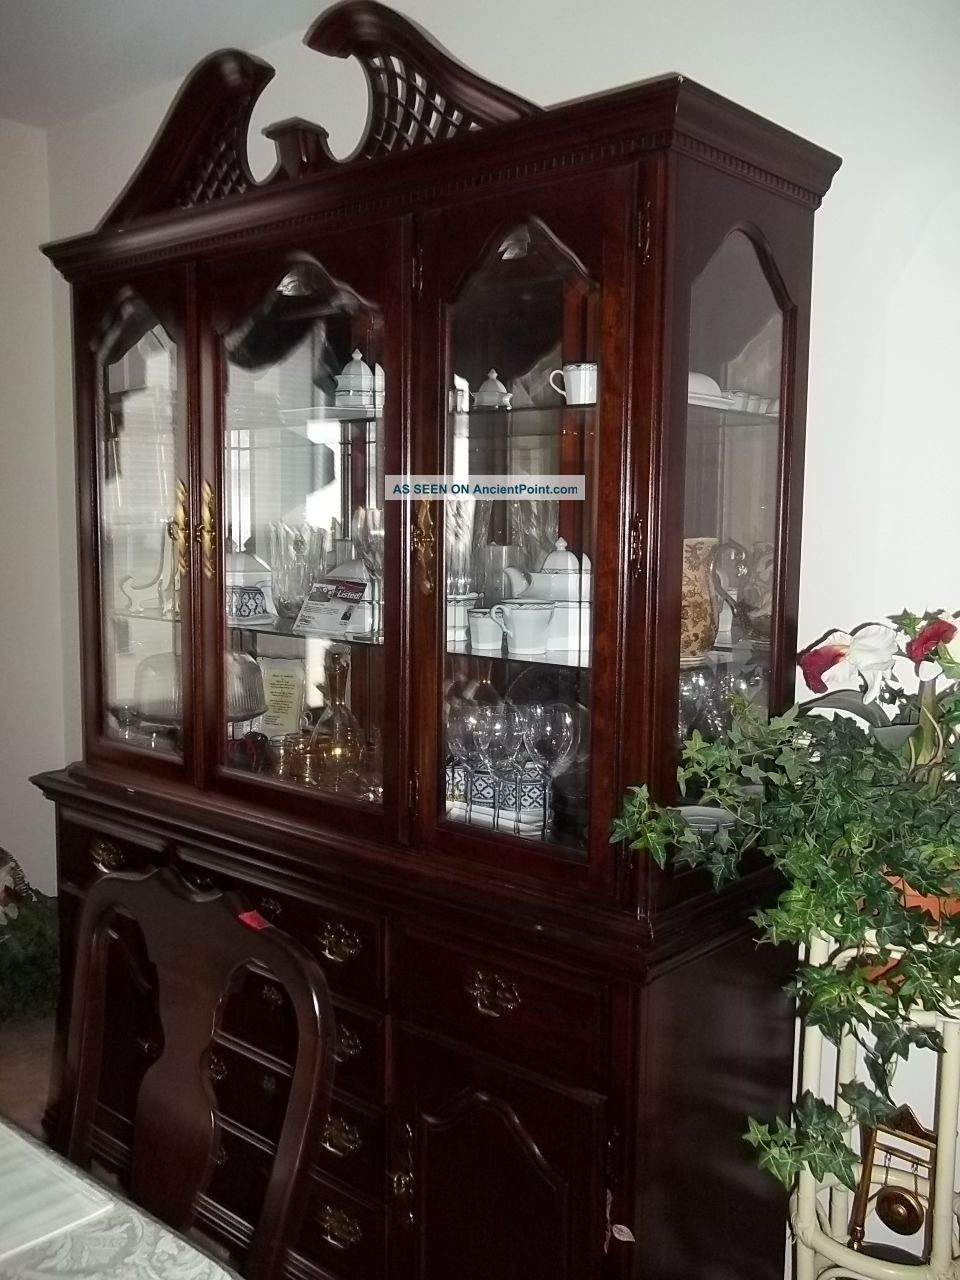 Impressive Cherry Dining Room Sets with China Cabinet 960 x 1280 · 168 kB · jpeg